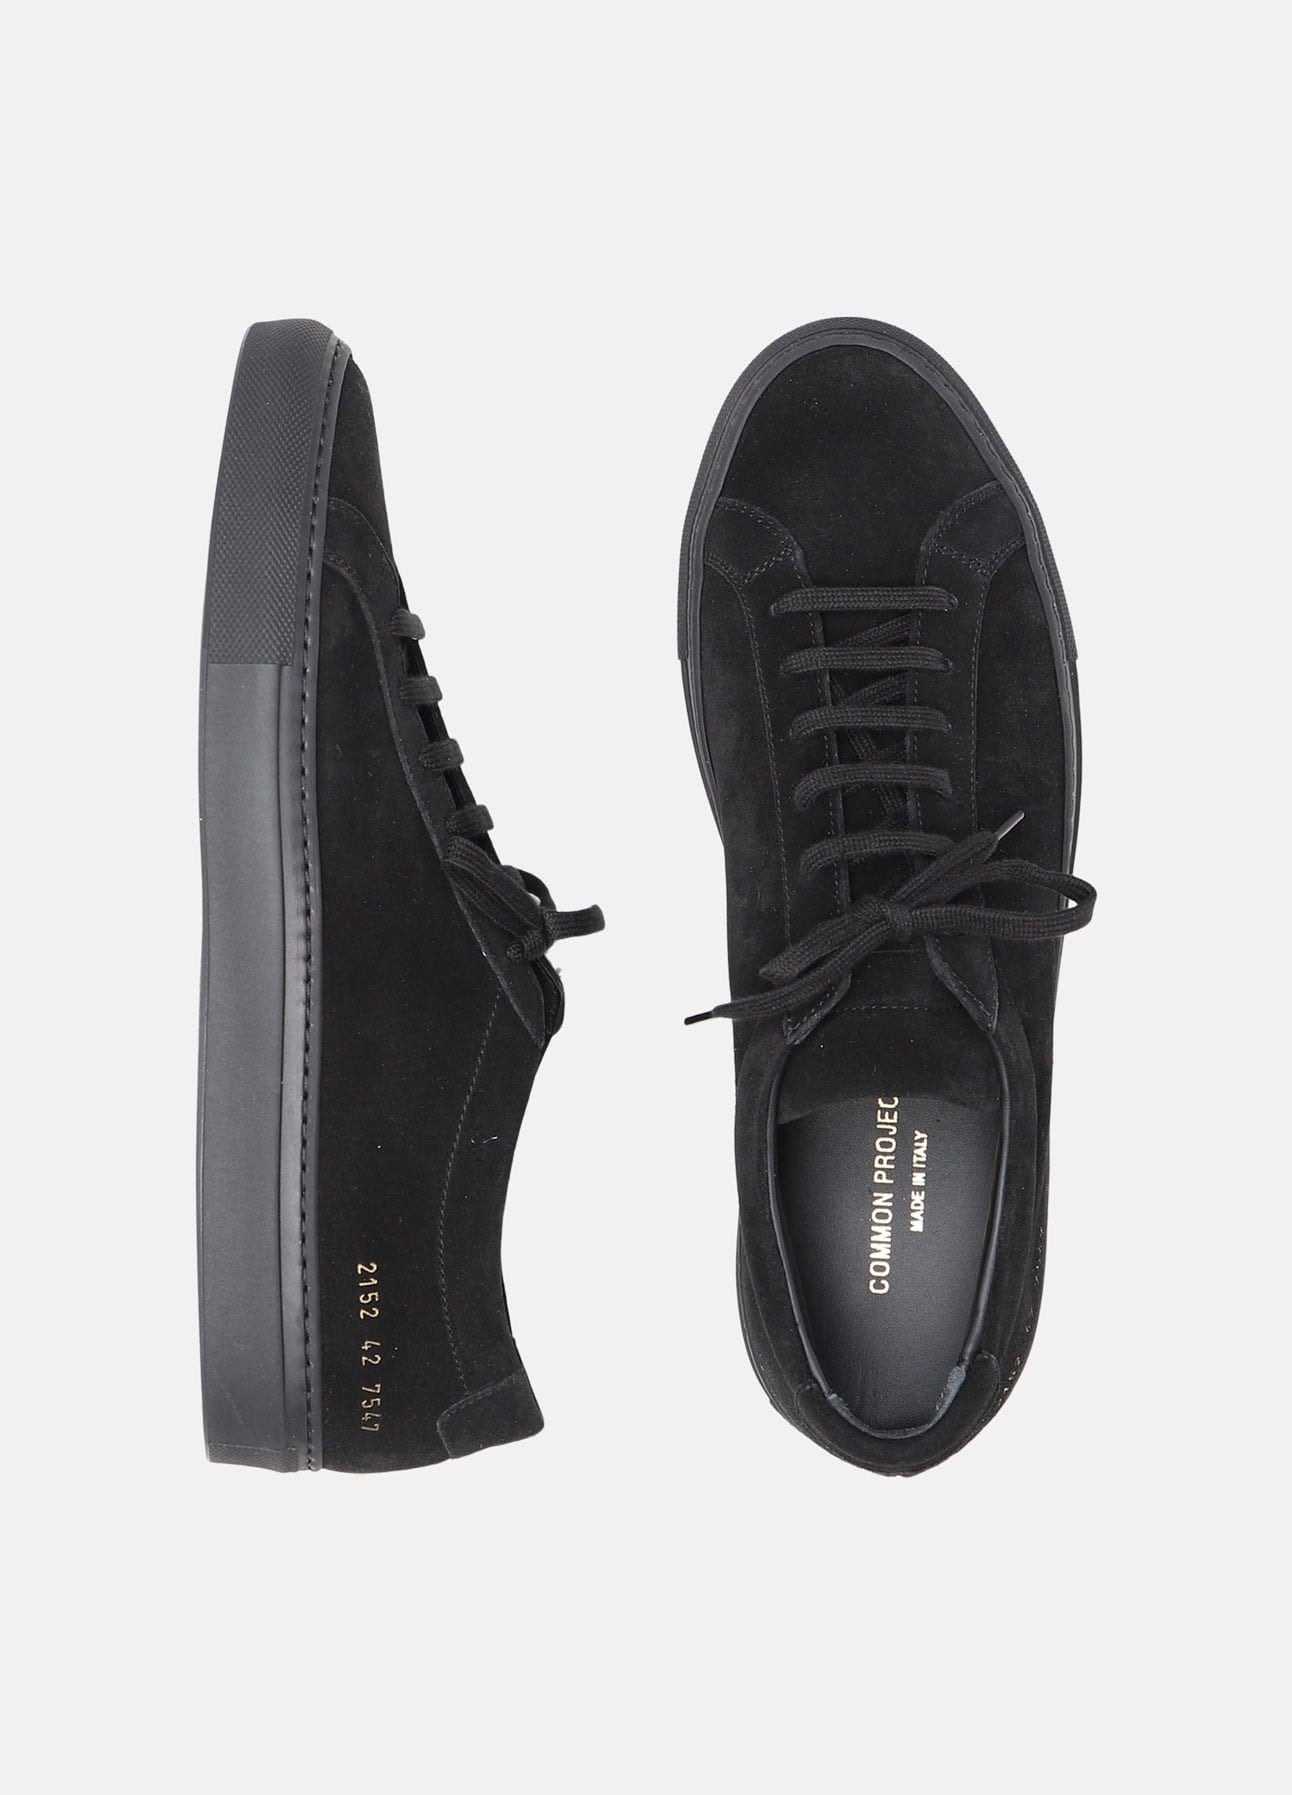 Sort sneaker fra Common Projects